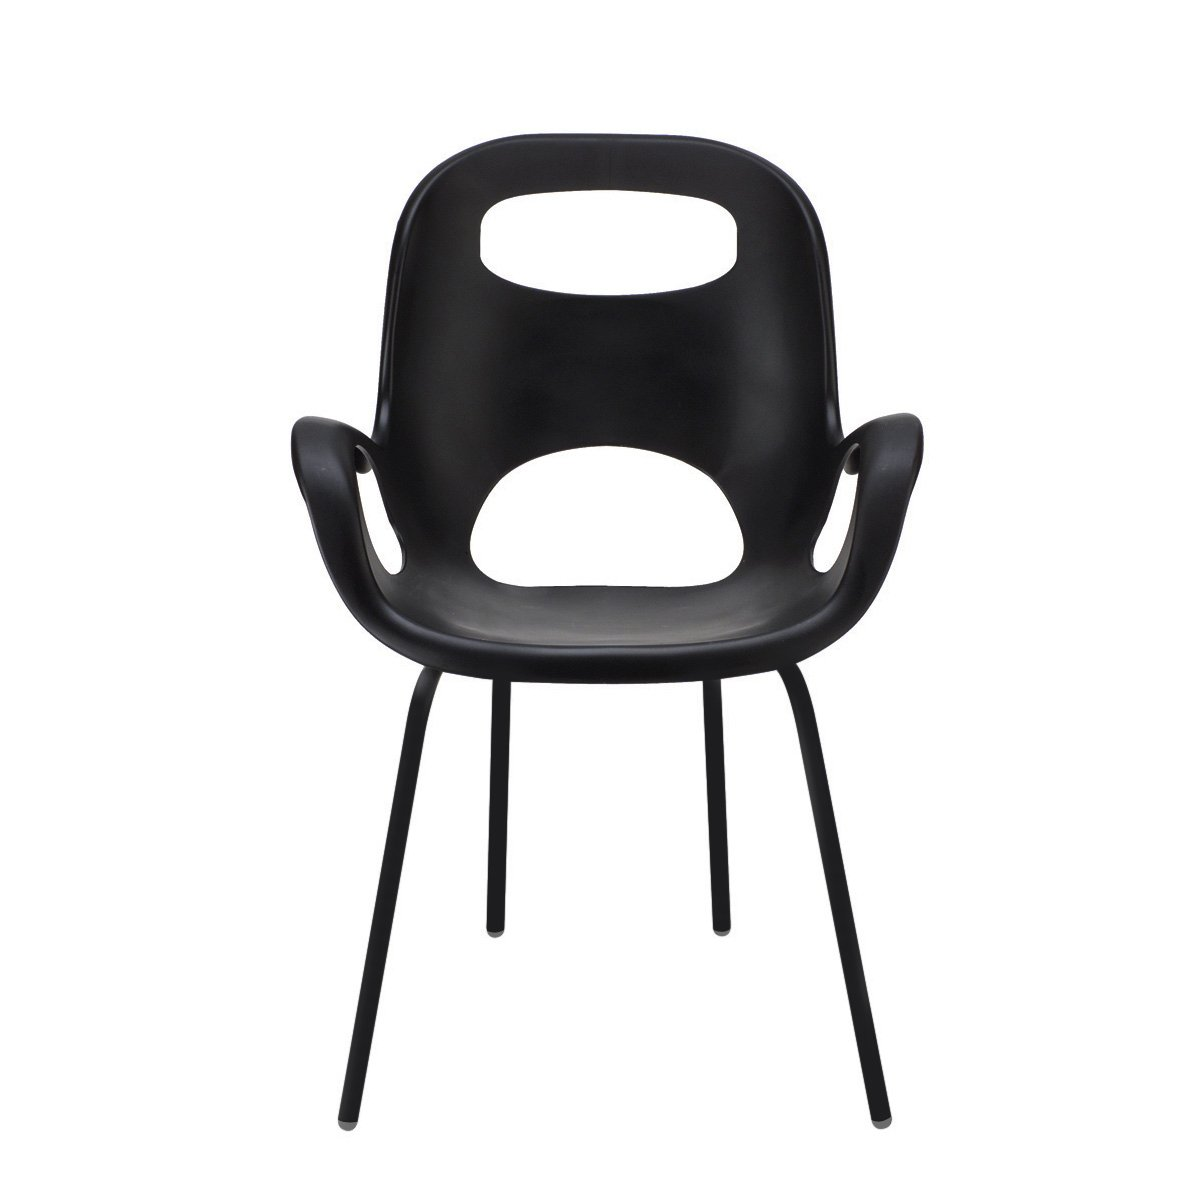 Umbra Oh Chair, Comfortable Seating Indoors and Outdoors, Weather-Resistant Matte Black